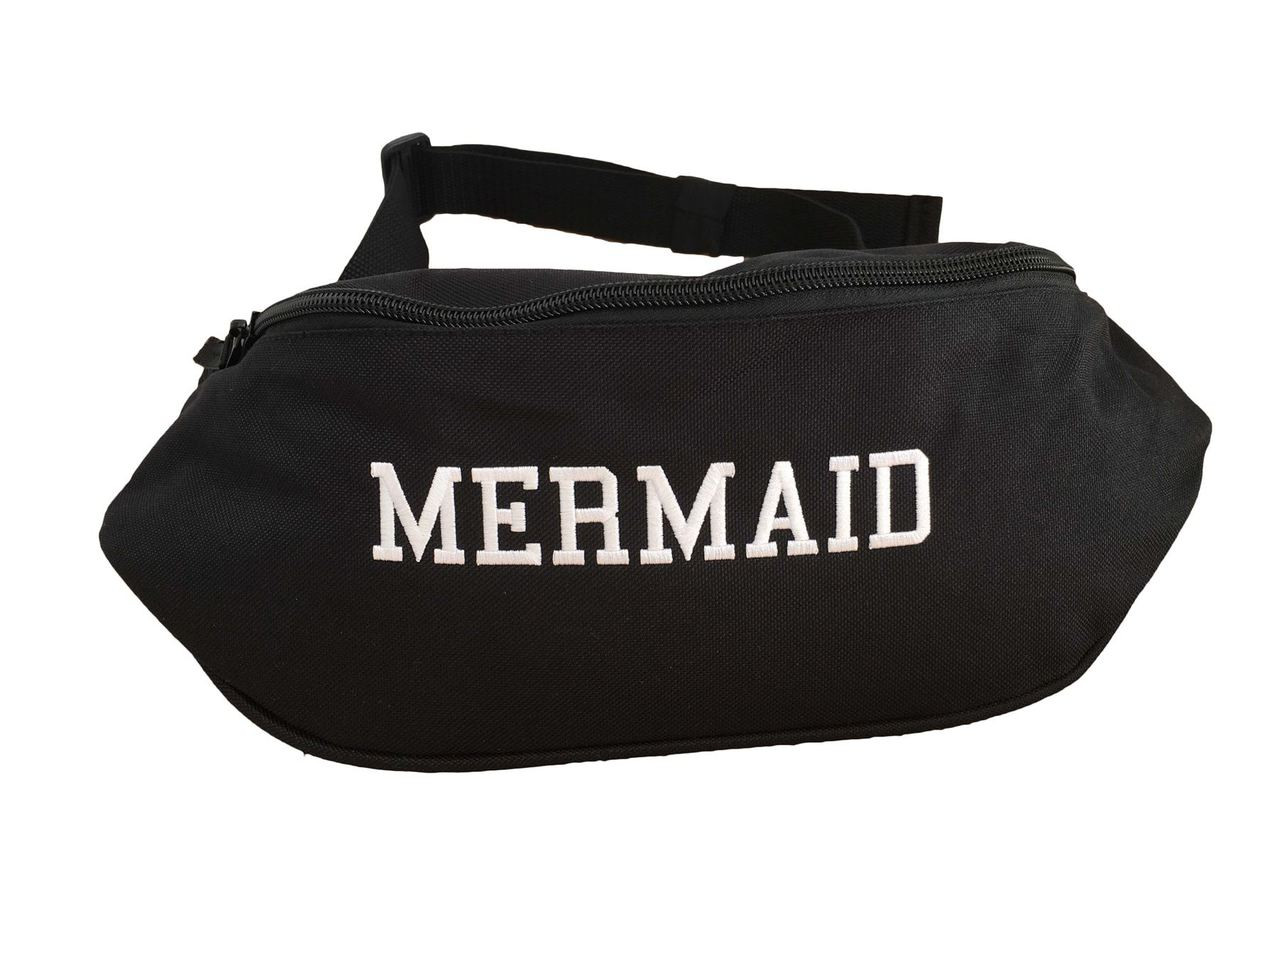 Twisted Mermaid Bum Bag